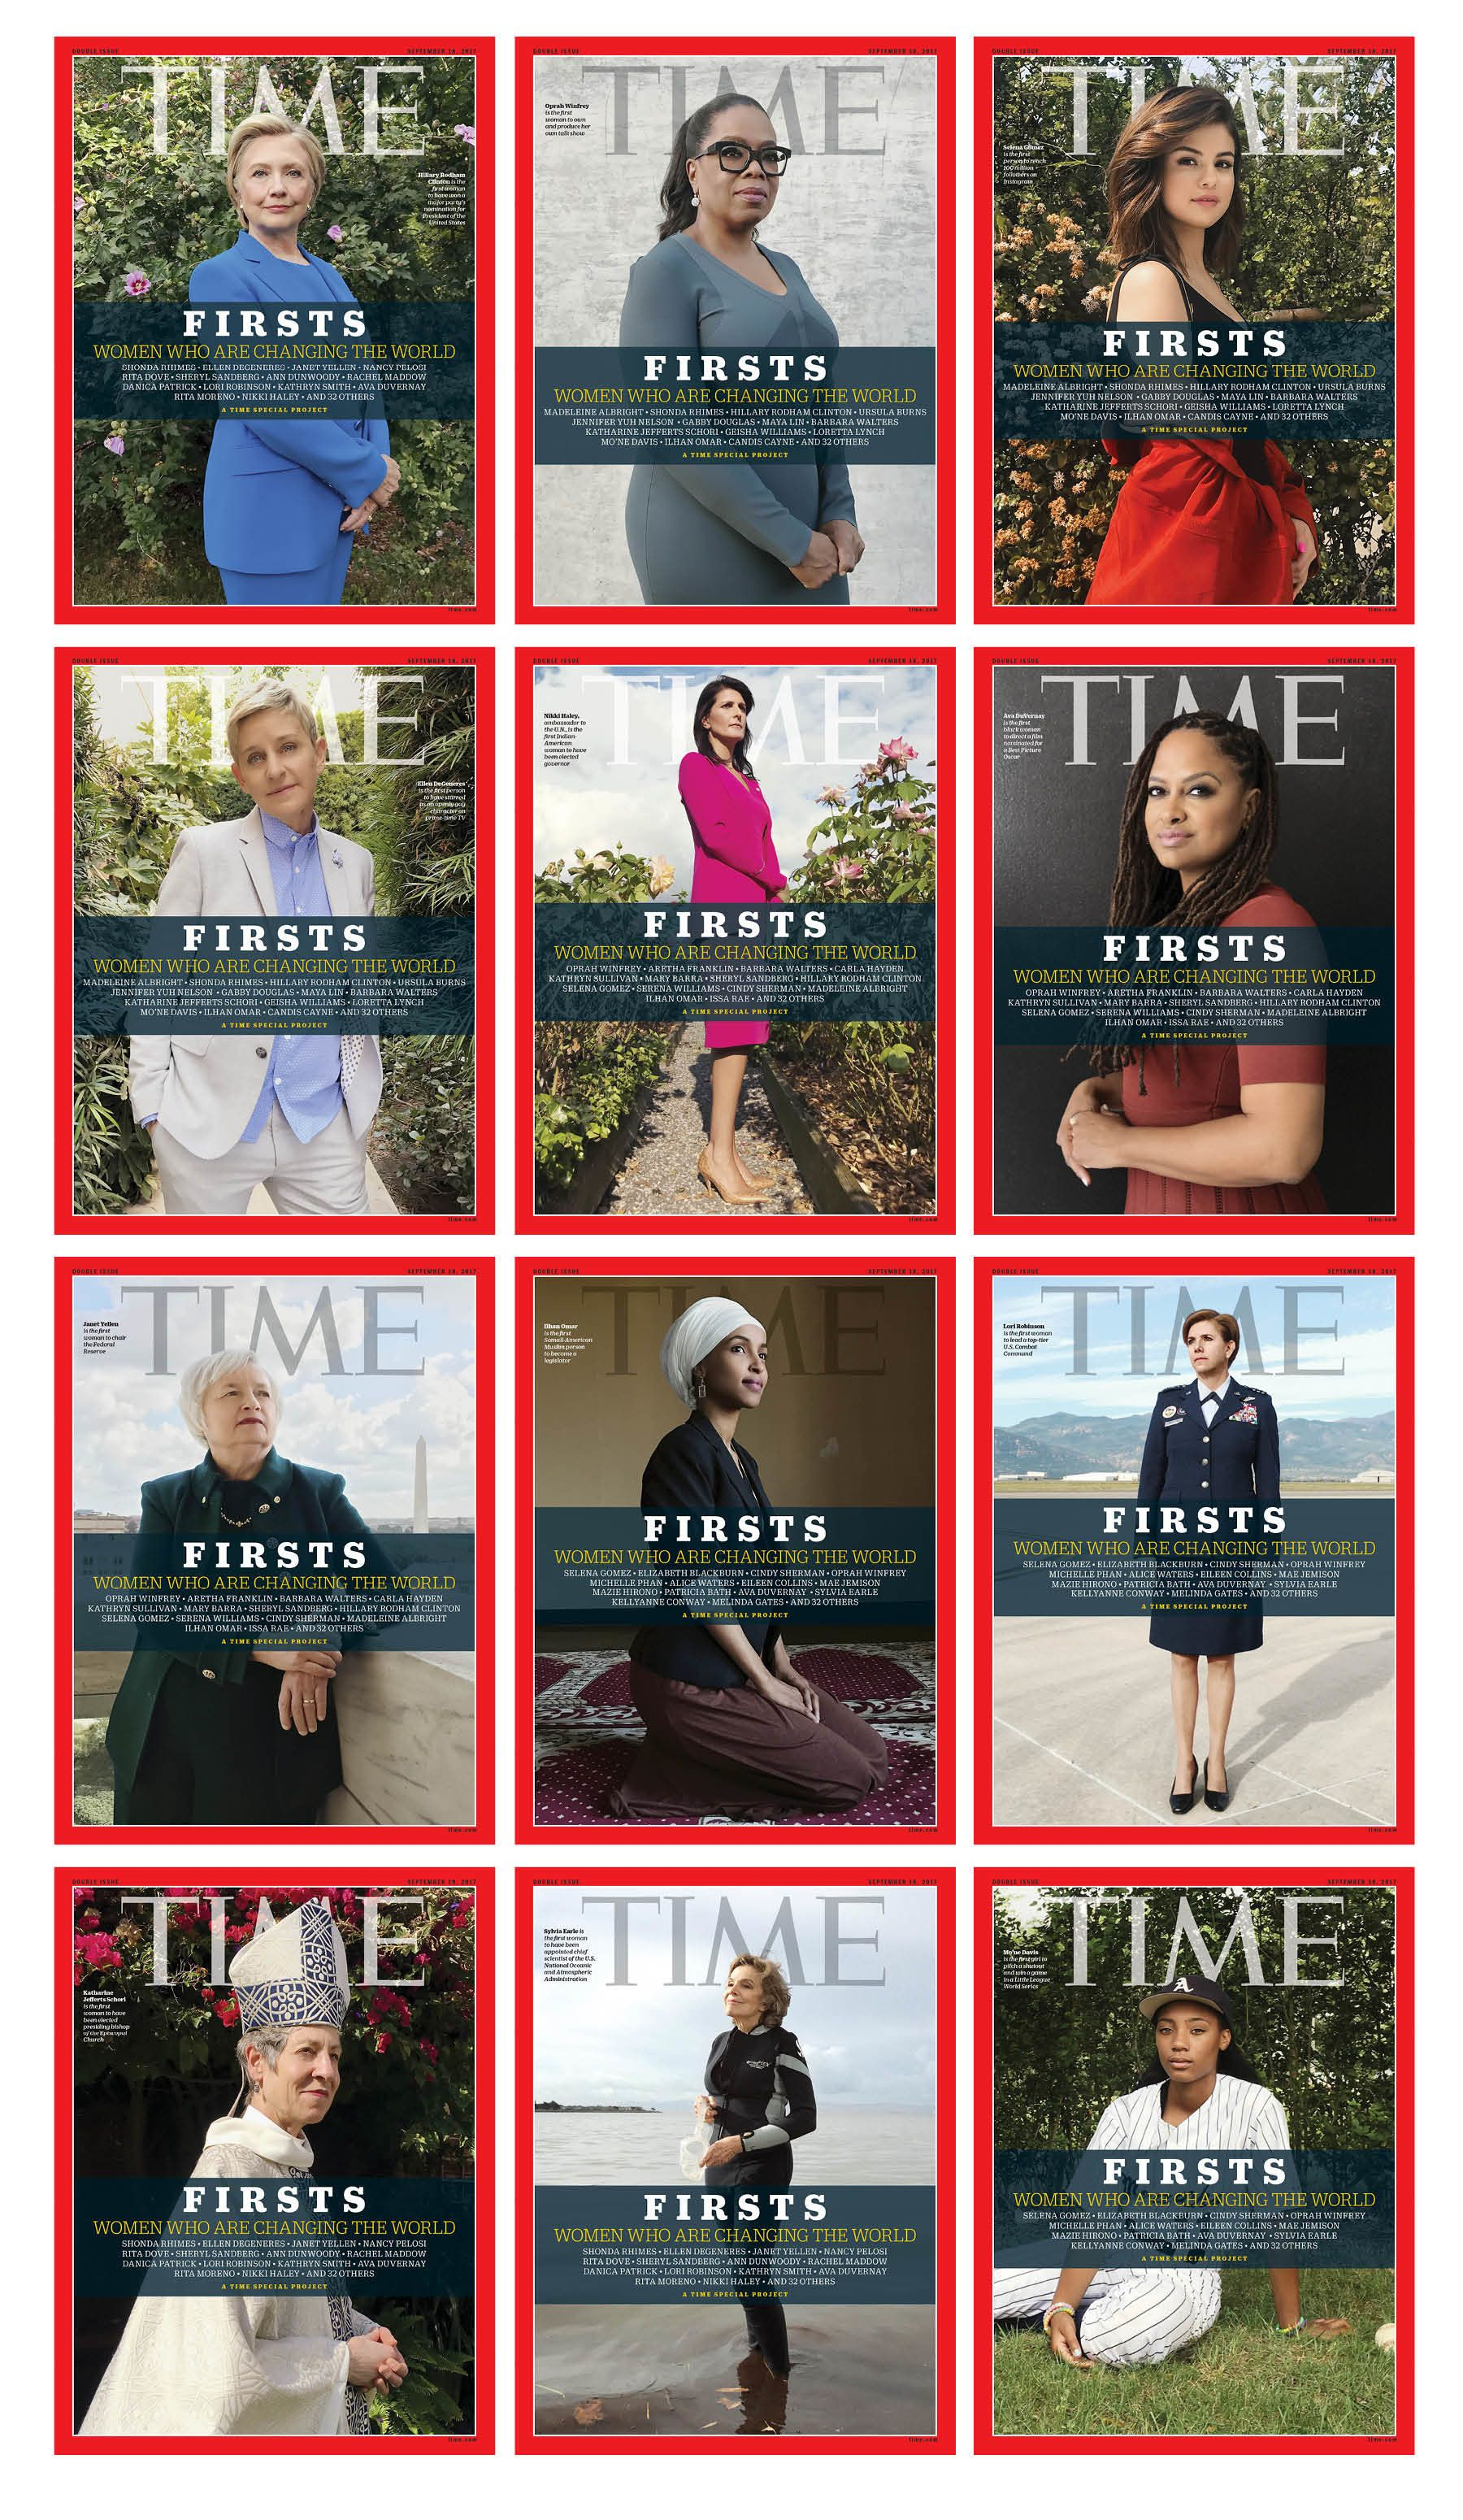 Time Unveiled 12 Stunning Covers Celebrating Game-Changing